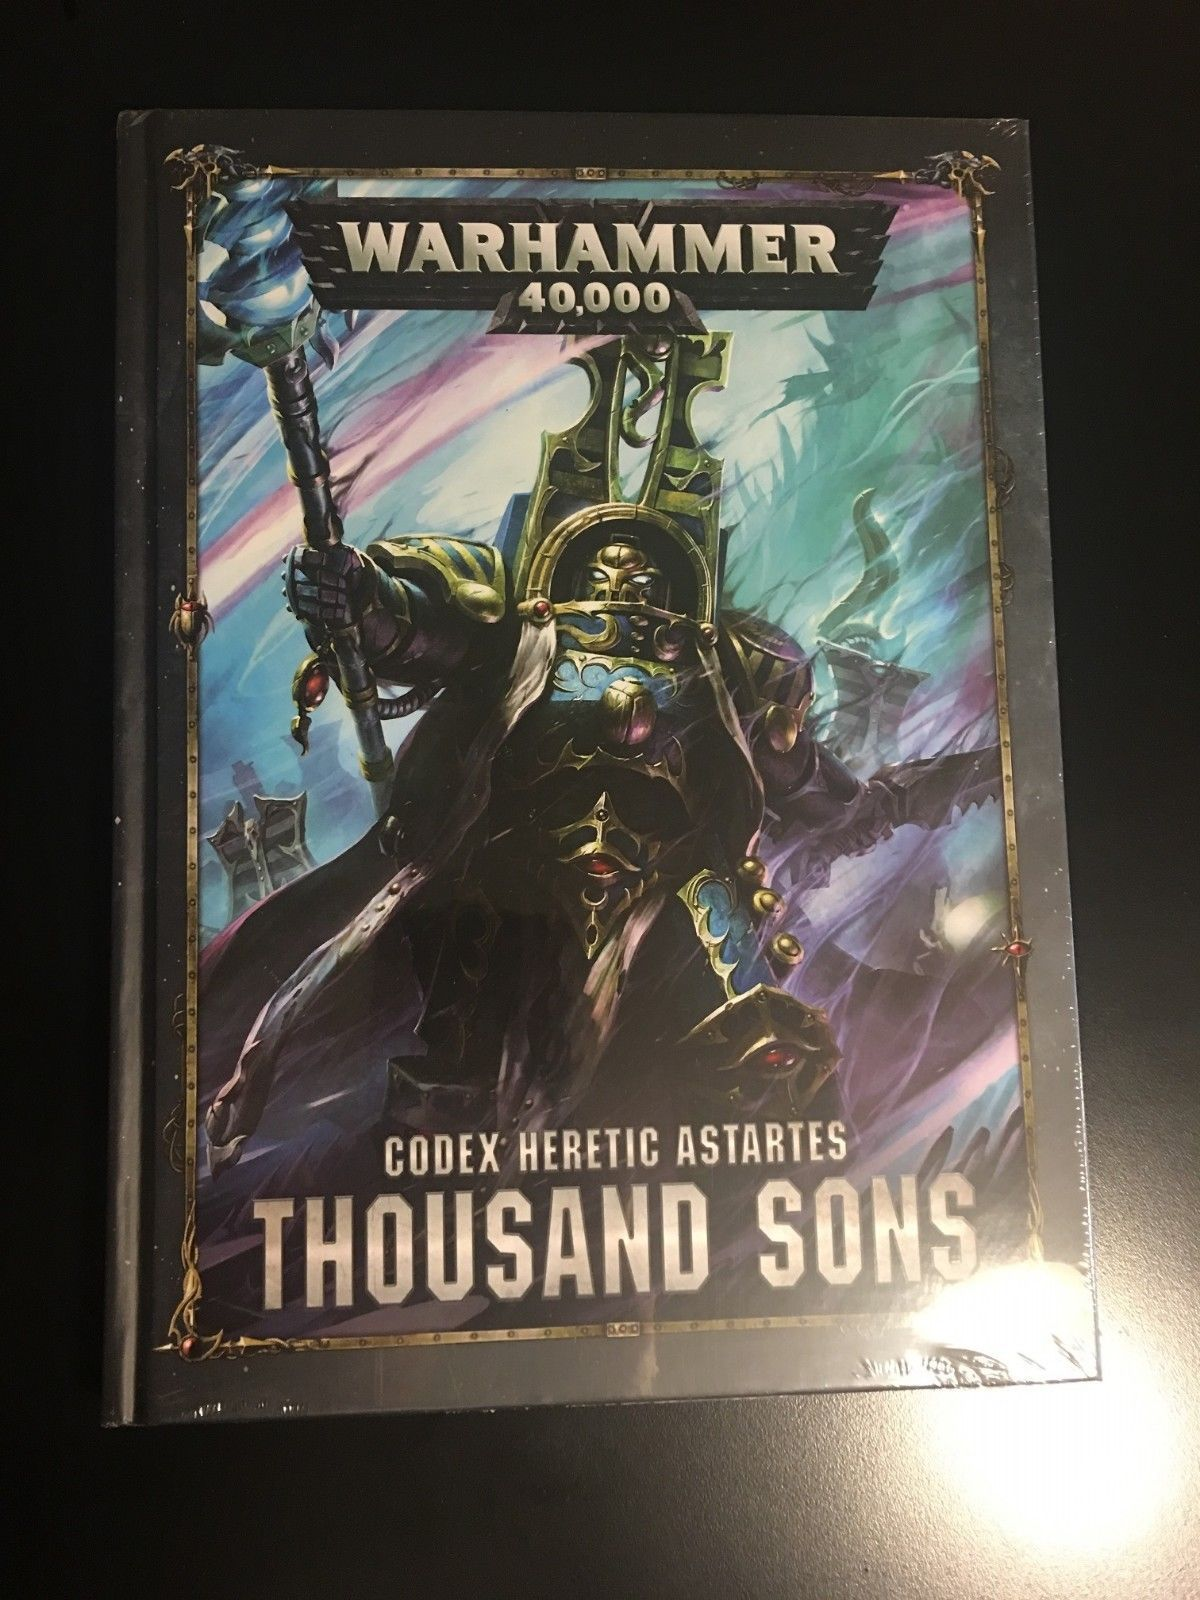 40K Rulebooks and Publications 90944: Warhammer 40K Codex Thousand